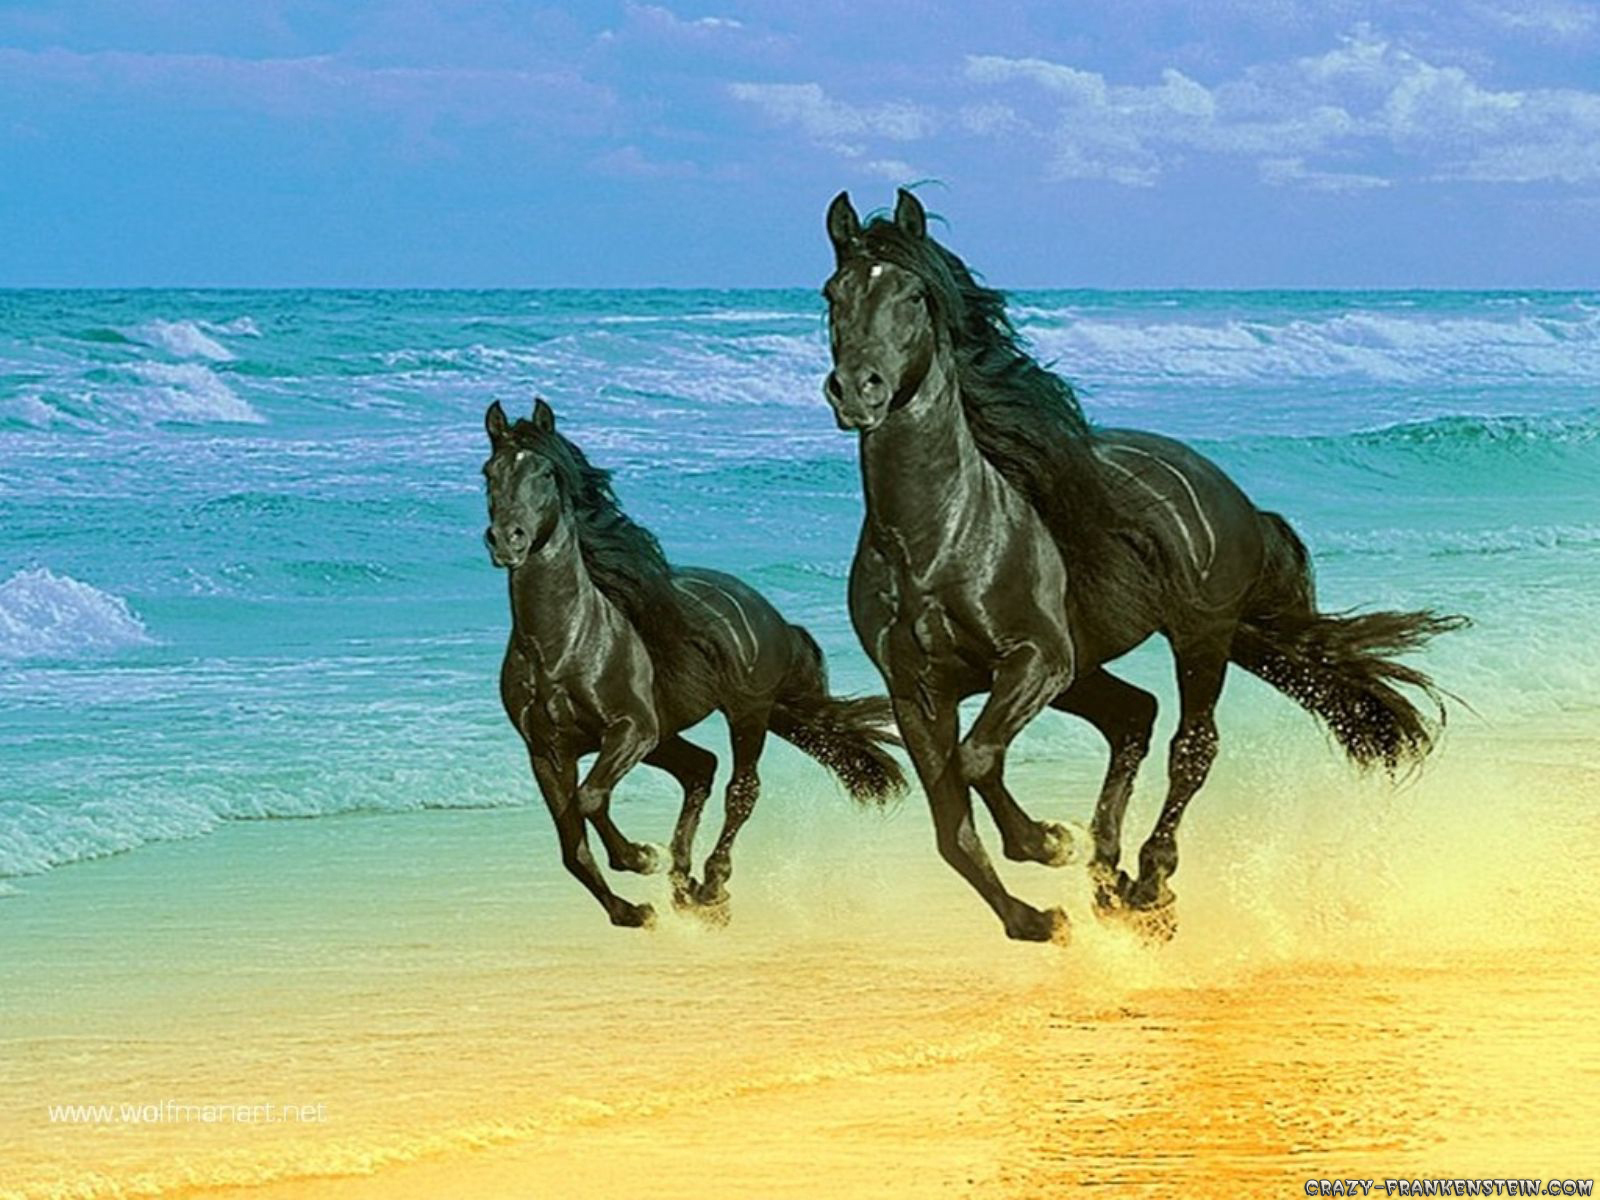 Horses images More horse wallpapers HD wallpaper and background 1600x1200